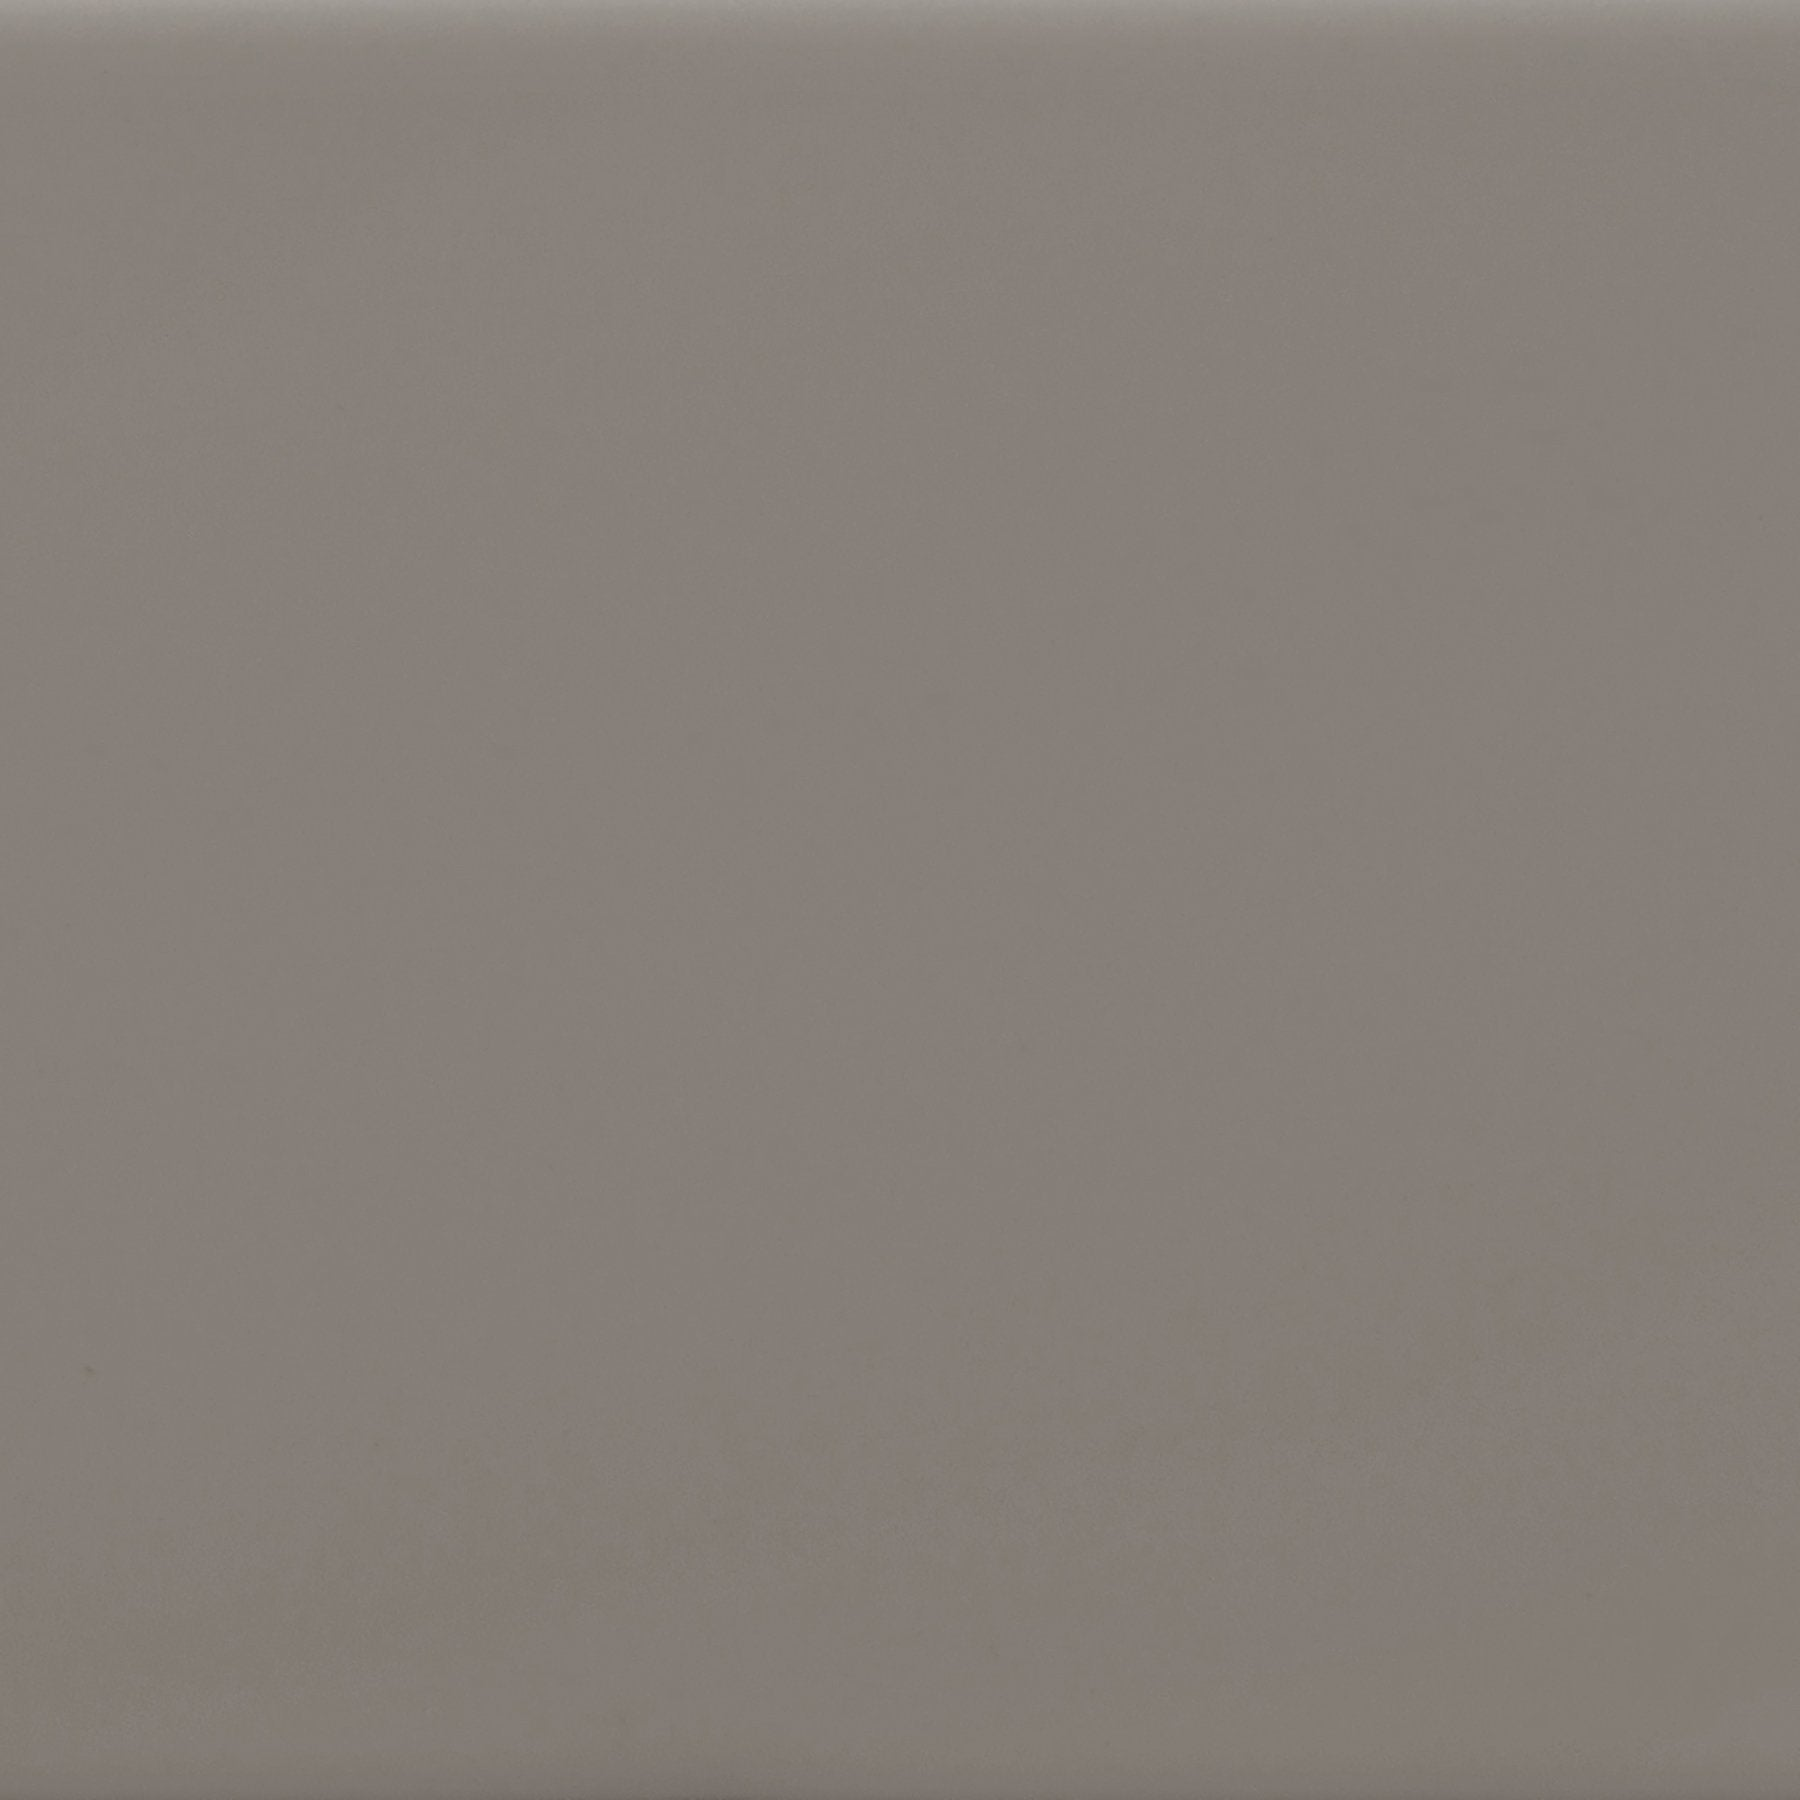 Logic Ceramic Wall Tile 6x6 Taupe